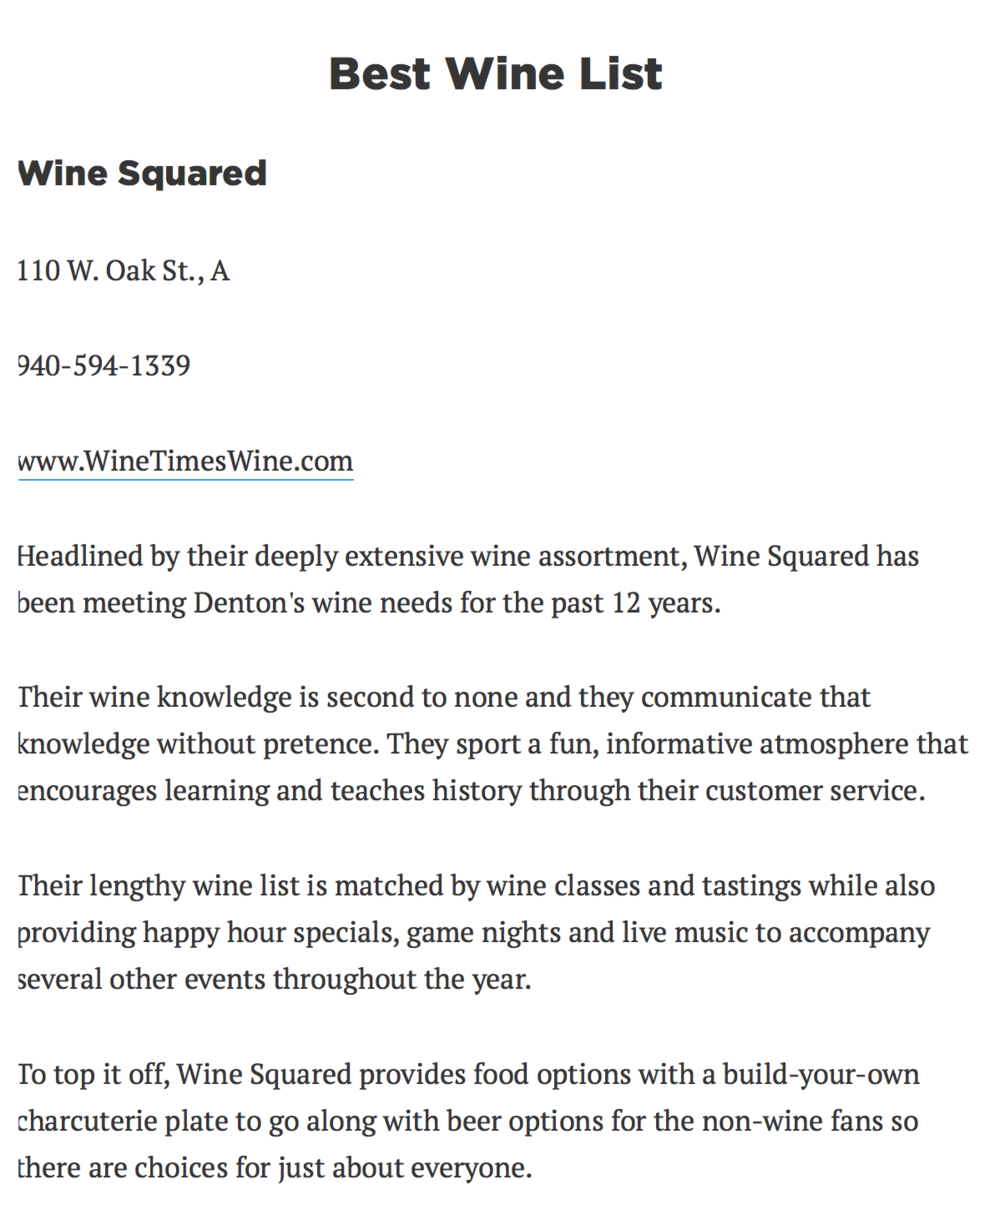 Best Wine List in Denton.png